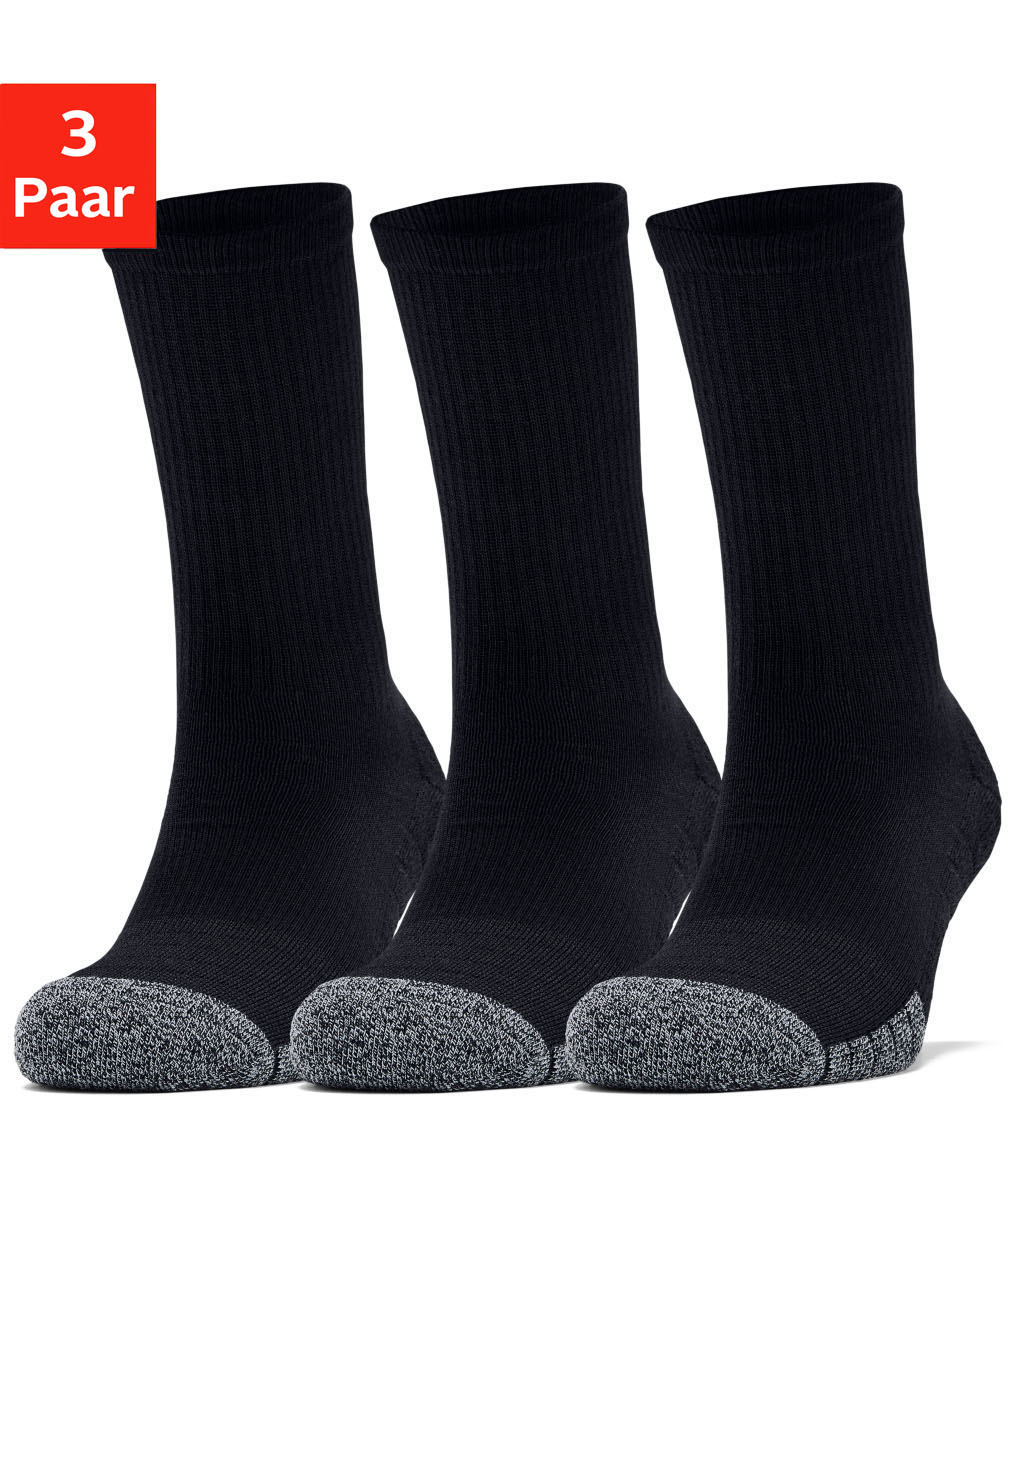 Under Armour® Socken (3 Paar)